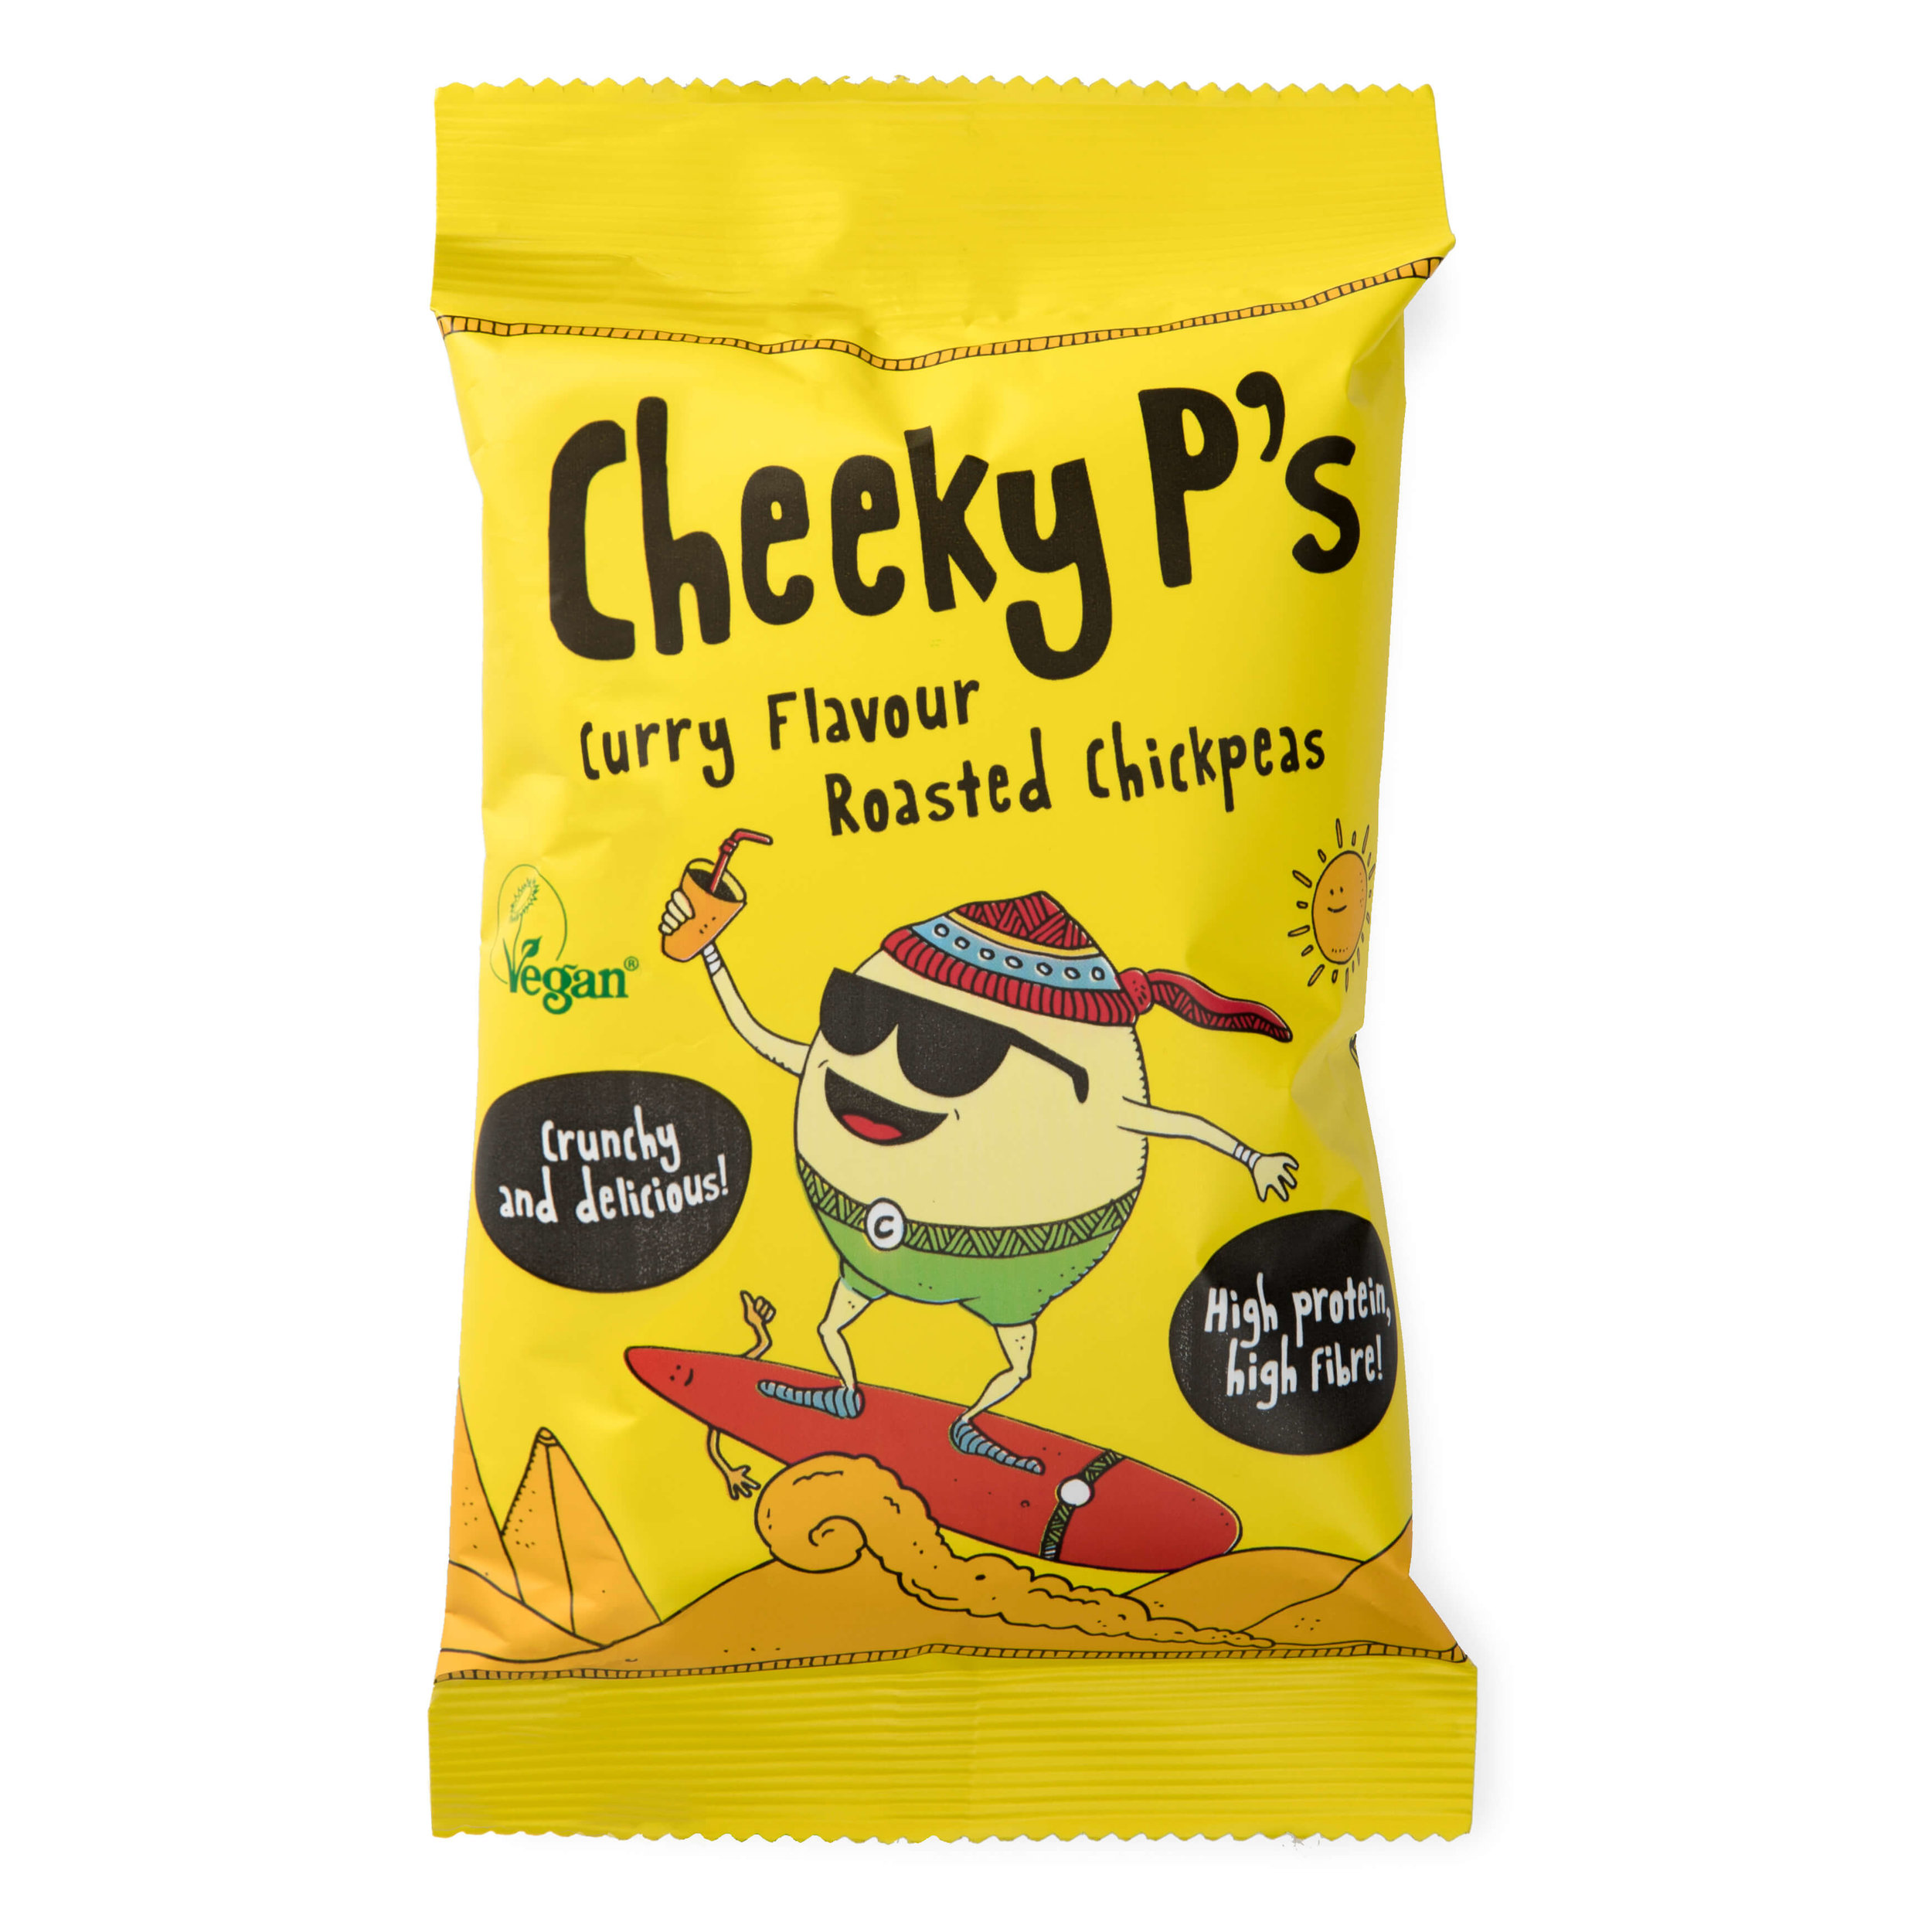 Office Pantry Cheeky Ps Curry Flavour.jpg